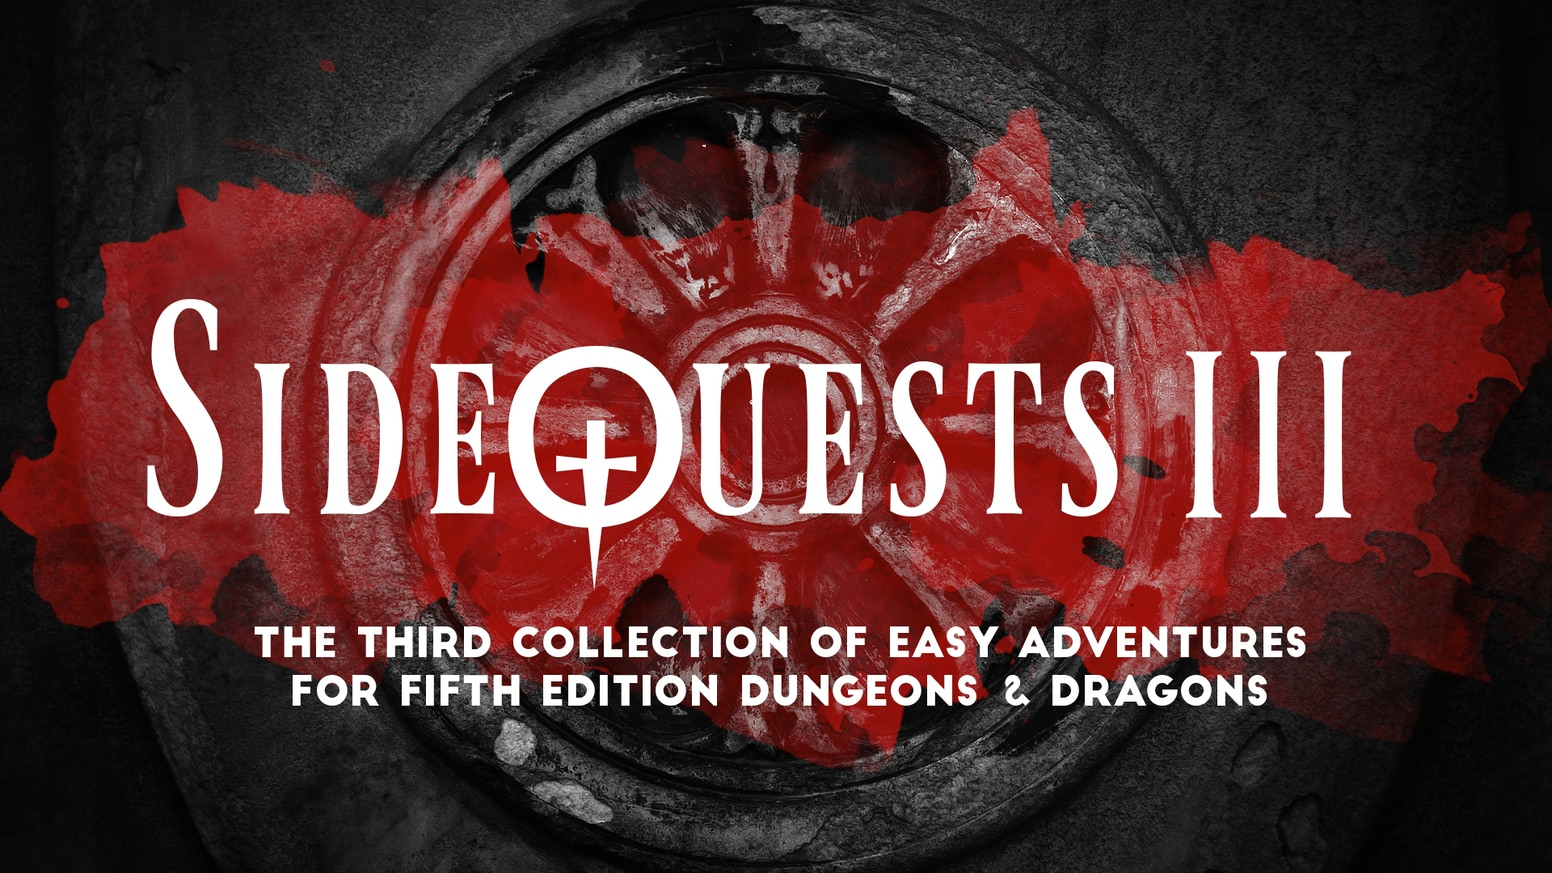 The third collection of one-shot adventure modules for Fifth Edition D&D, designed to instantly implement into your campaign setting!